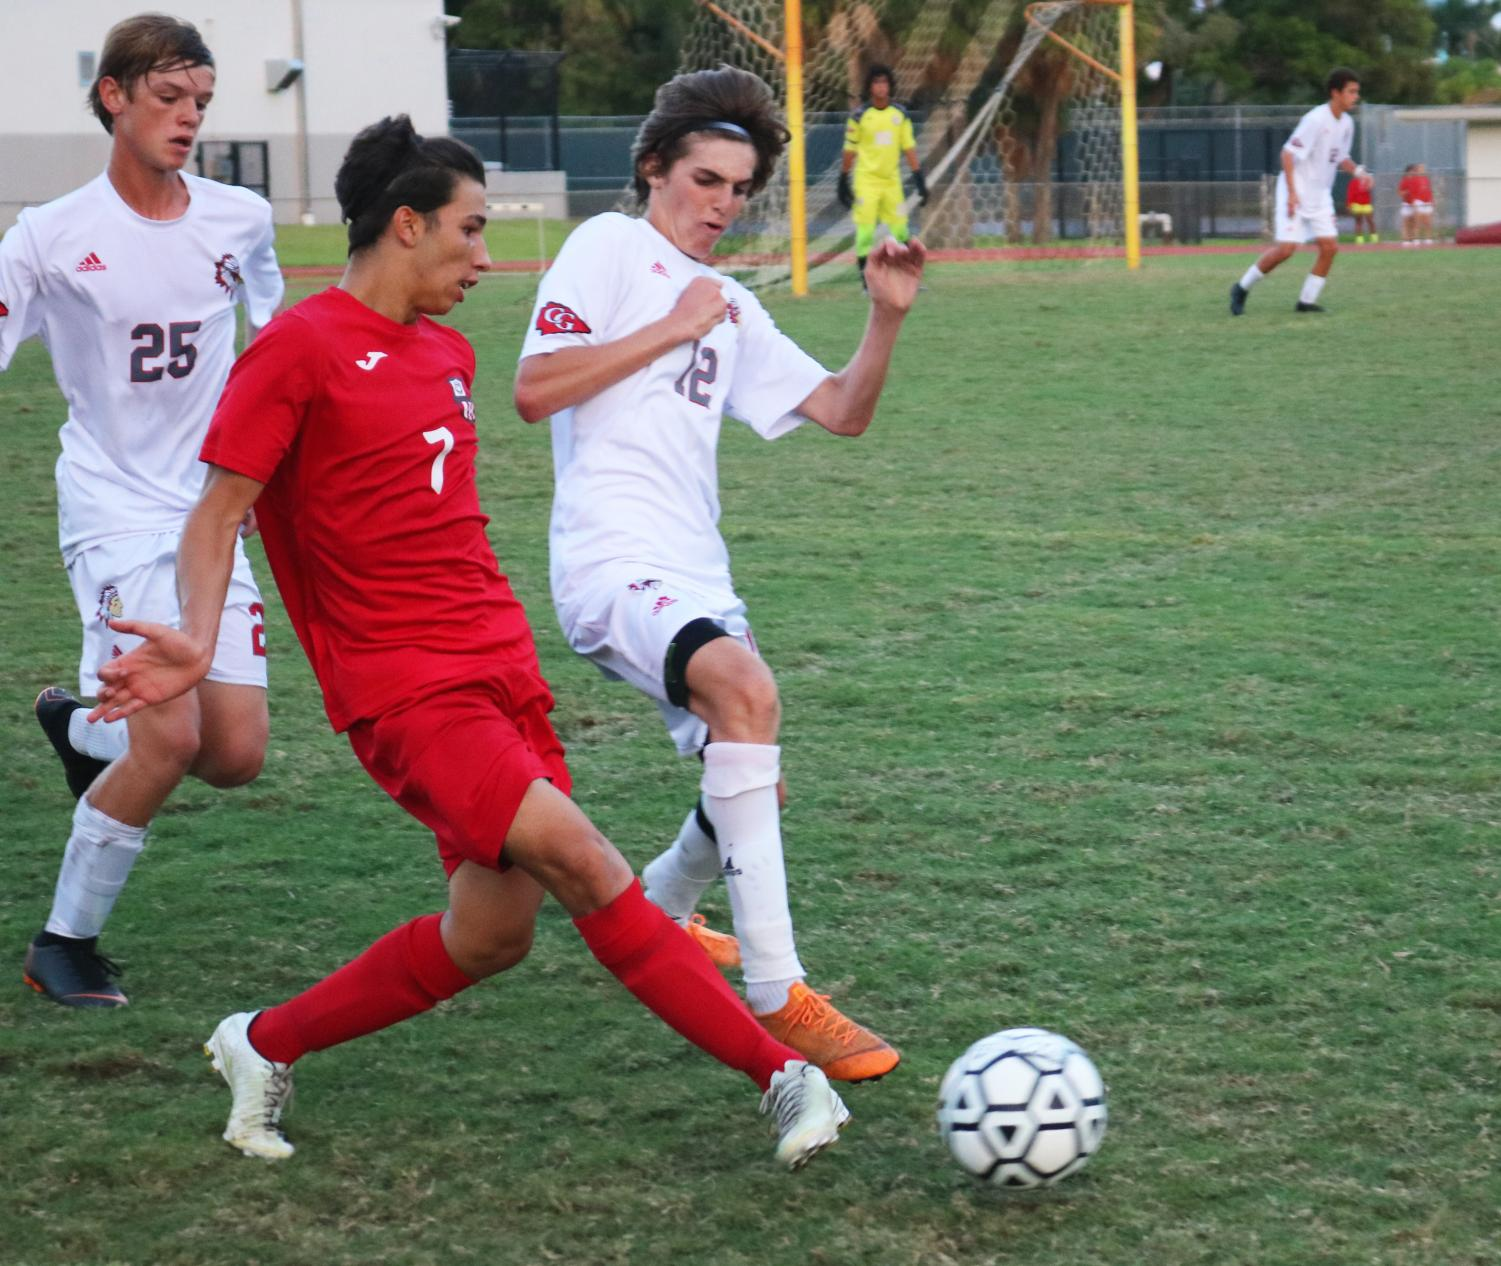 Jordan Ferreira, right wing, avoids a slide tackle from opposing team members.